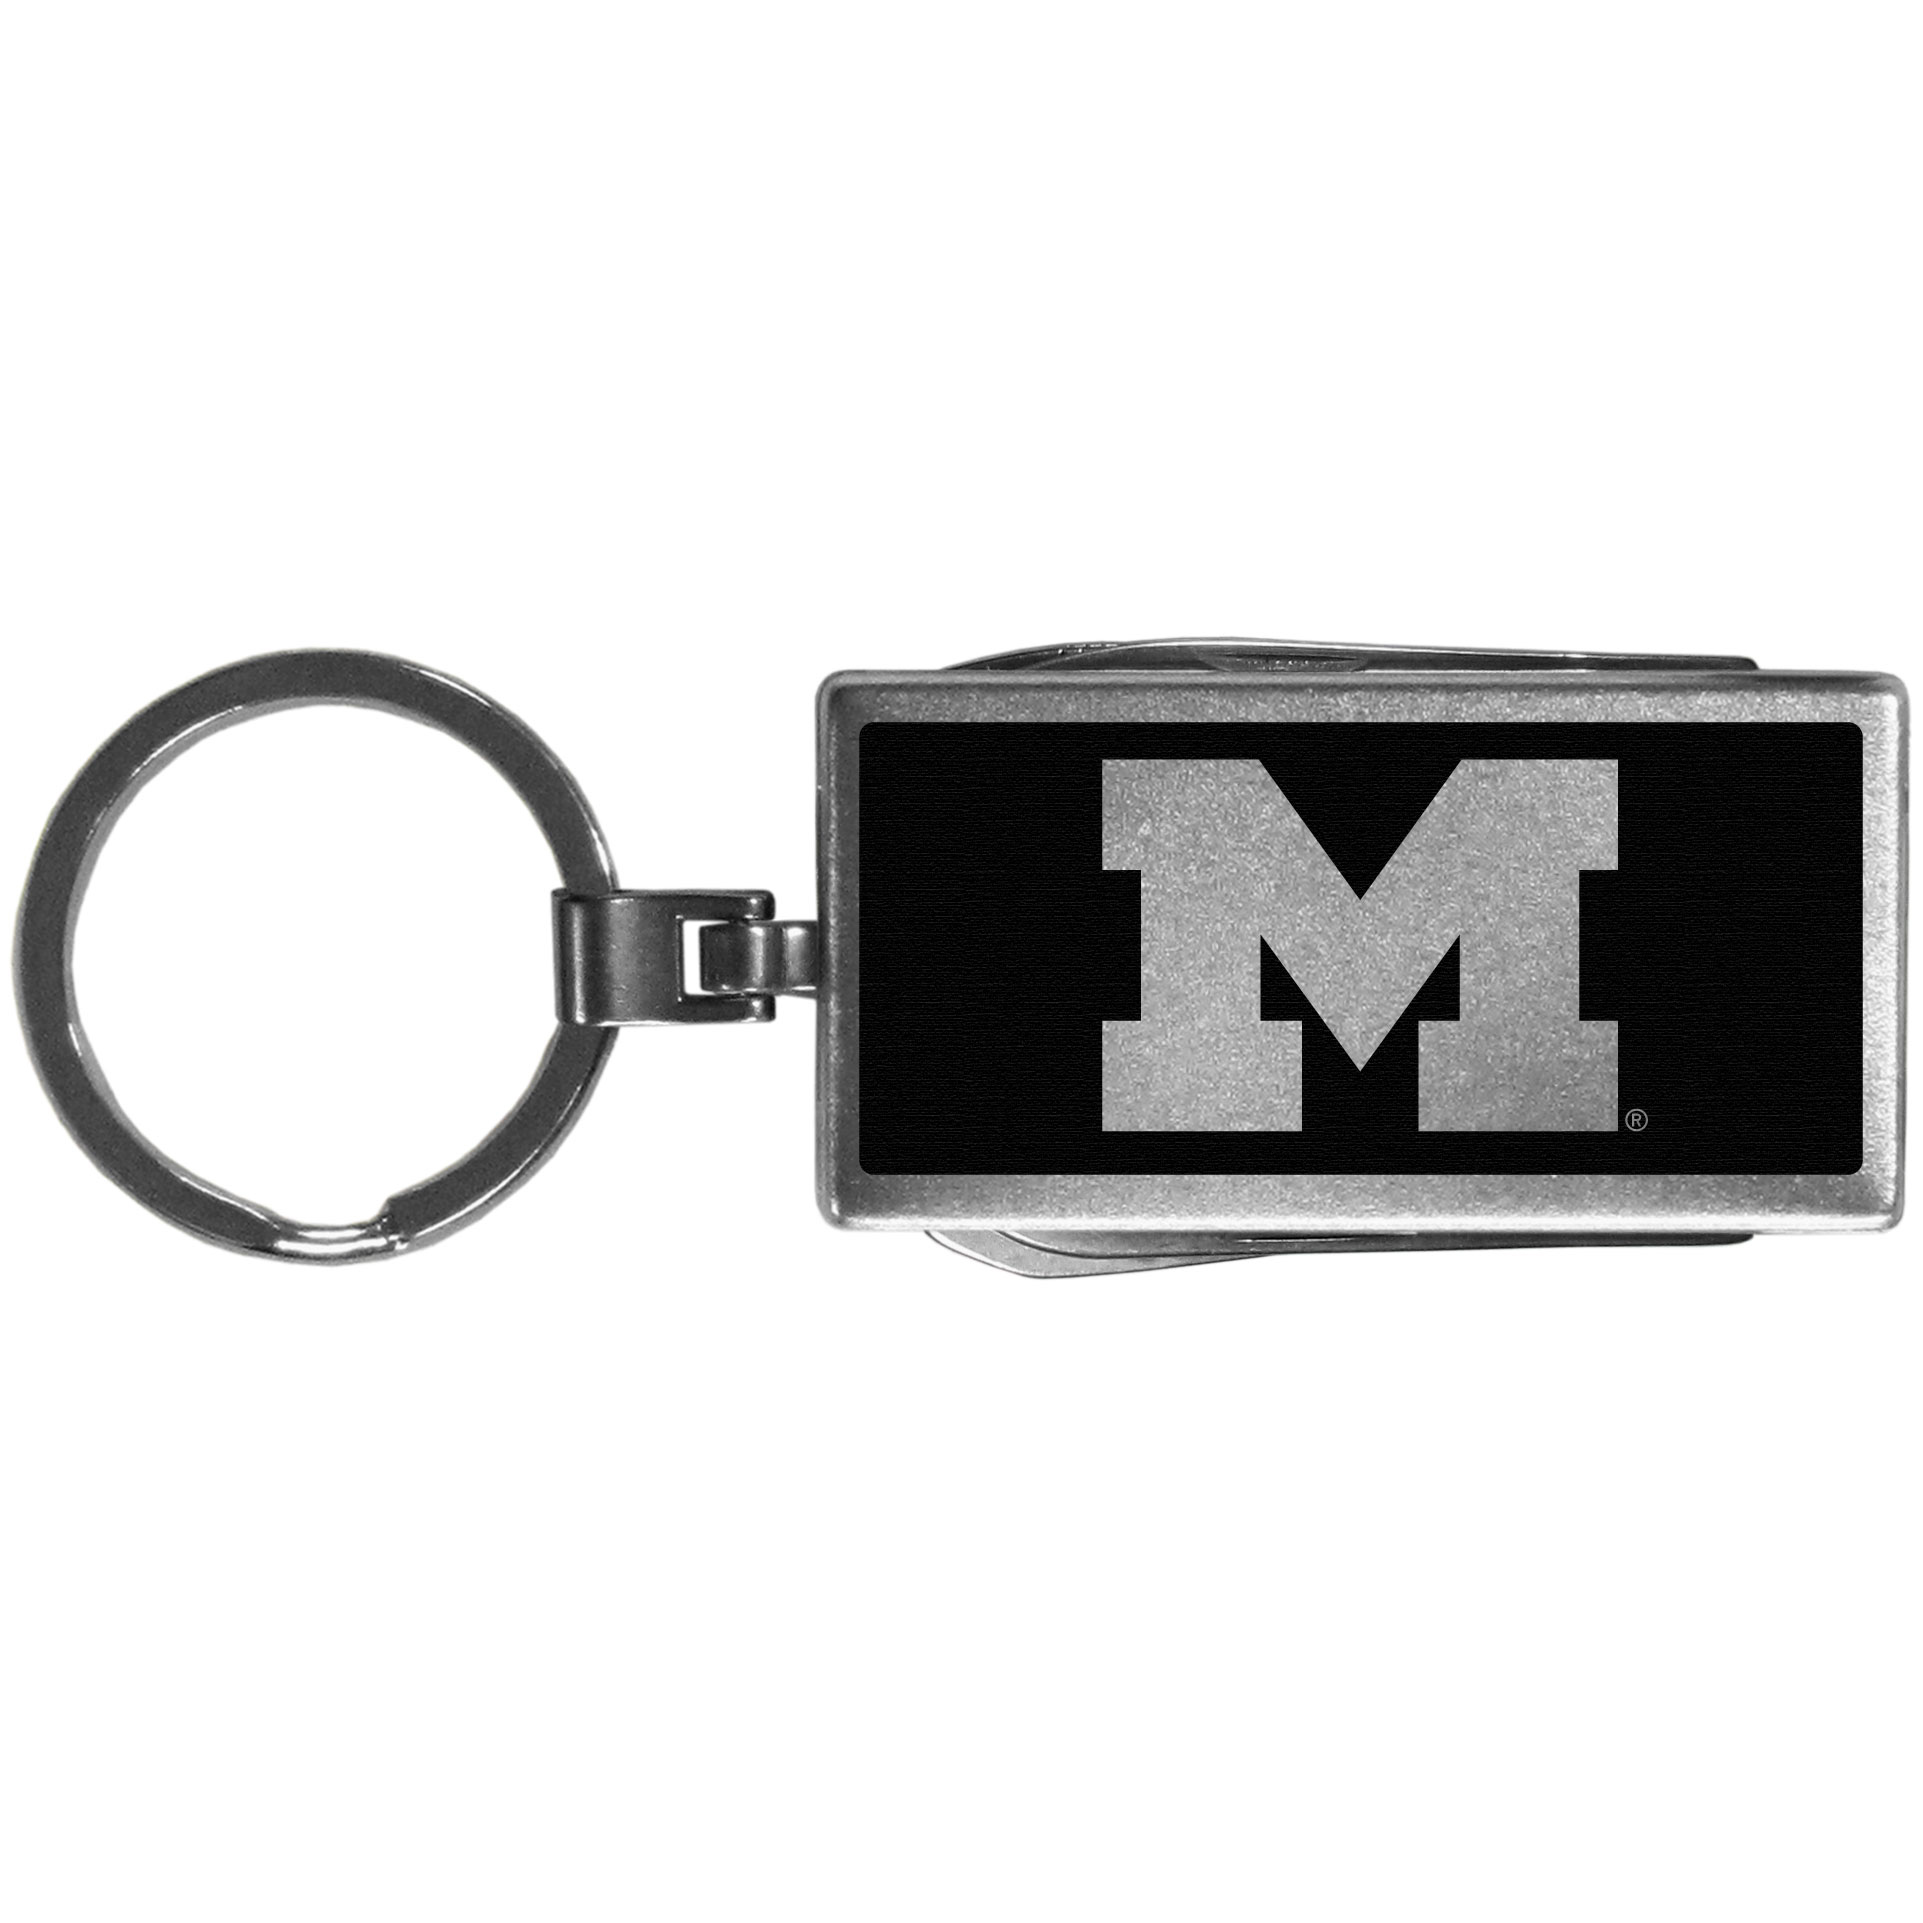 Michigan Wolverines Multi-tool Key Chain, Black - Be the hero at the tailgate, camping, or on a Friday night with your Michigan Wolverines Multi-Tool Keychain which comes complete with bottle opener, scissors, knife, nail file and screw driver. Be it opening a package or a beverage Siskiyou's Multi-Tool Keychain goes wherever your keys do. The keychain hangs at 4 inches long when closed.